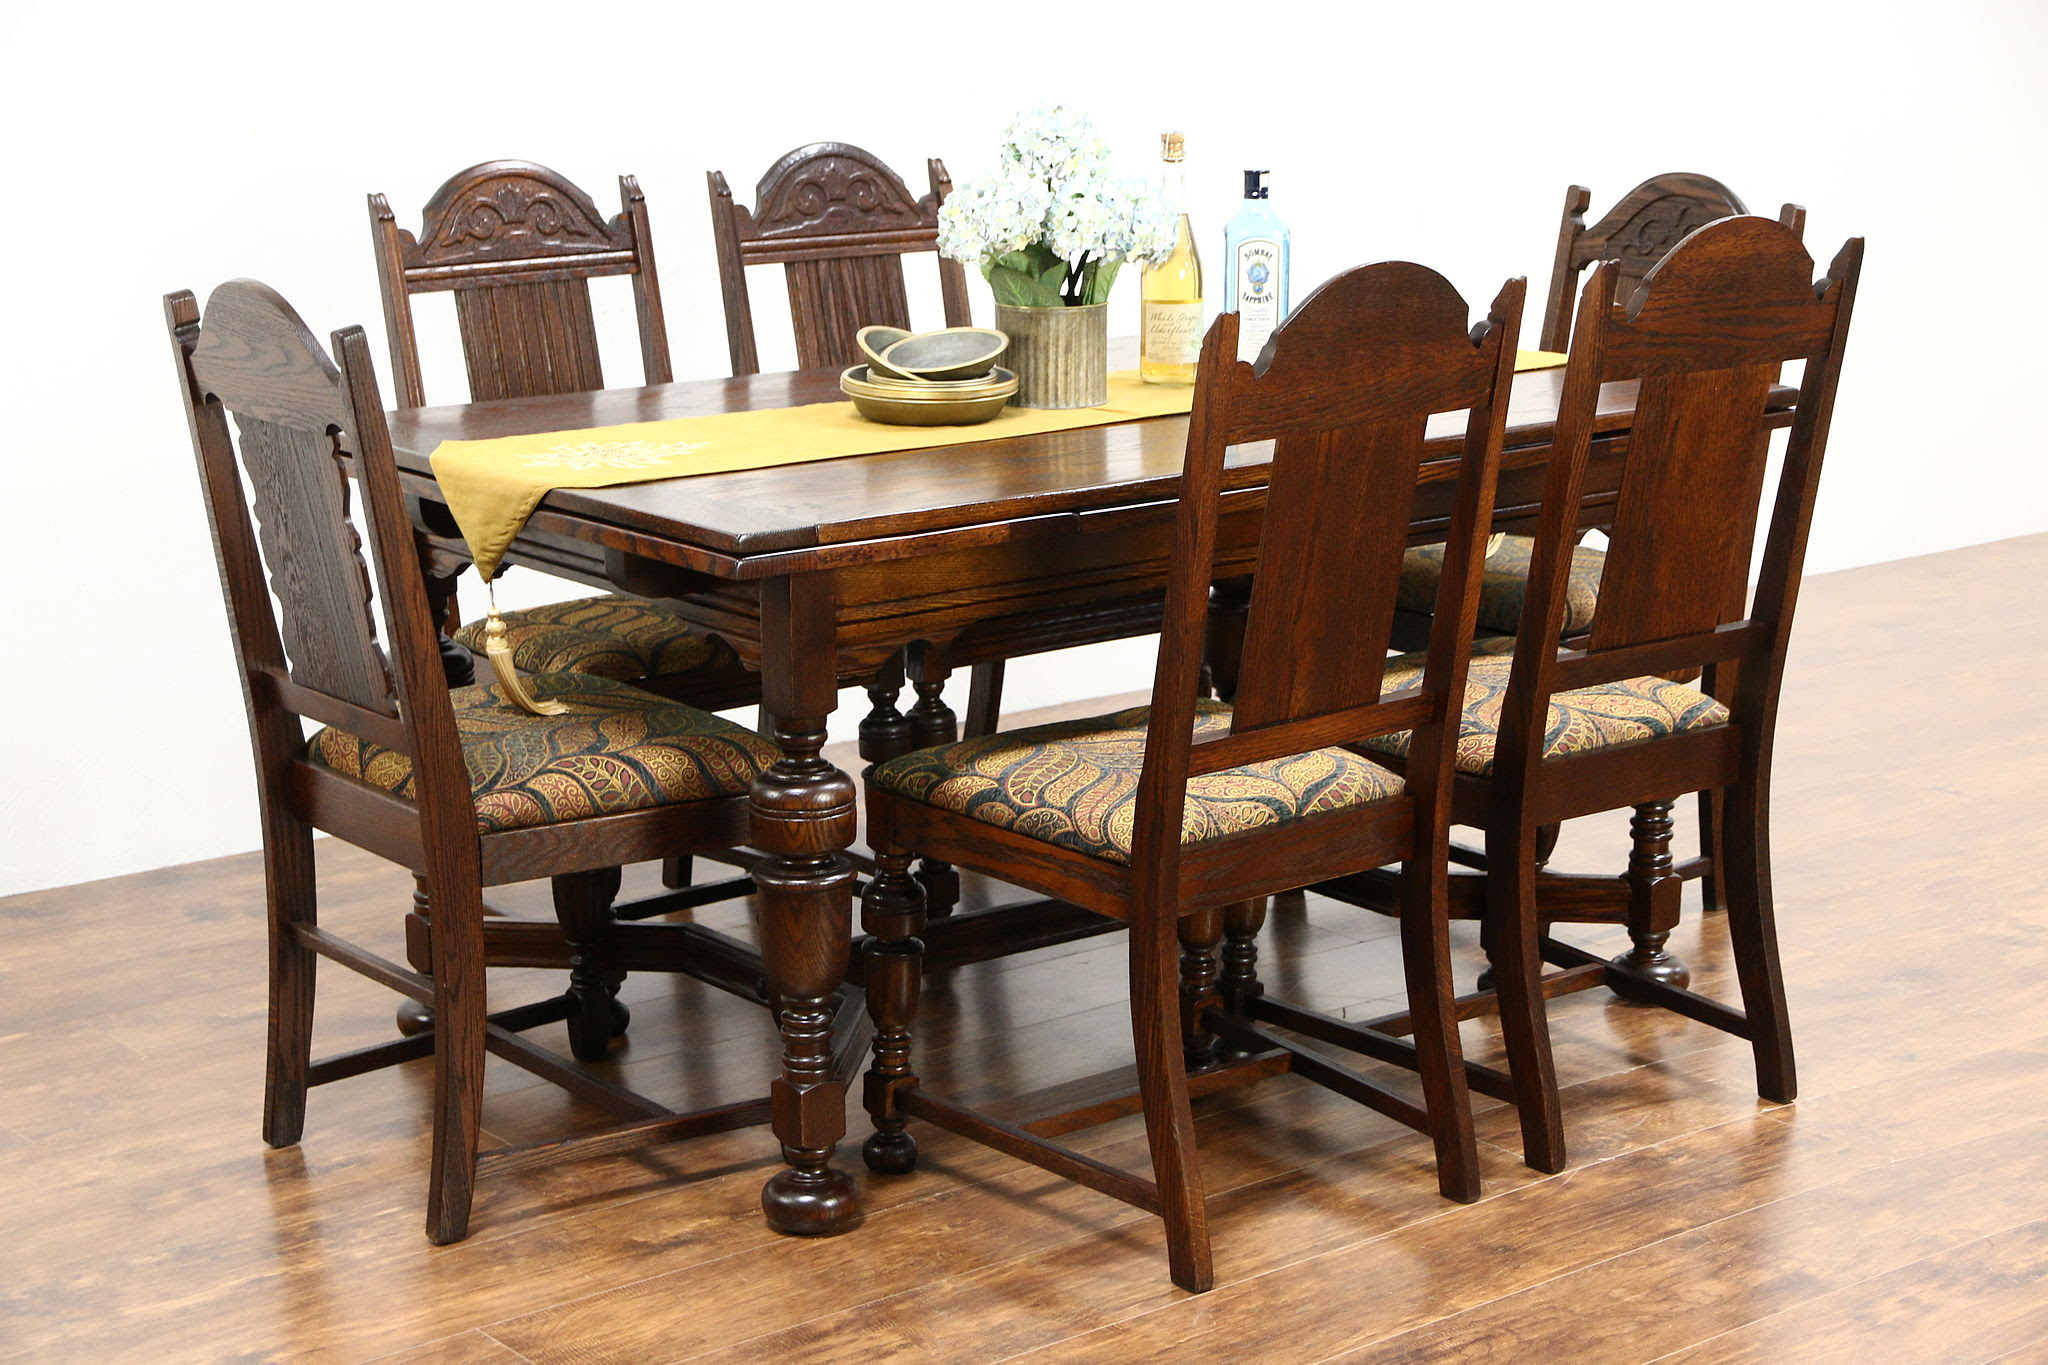 Sold English Tudor Antique 1920 Oak Dining Set Table 2 Leaves 6 Chairs Harp Gallery Antiques Furniture